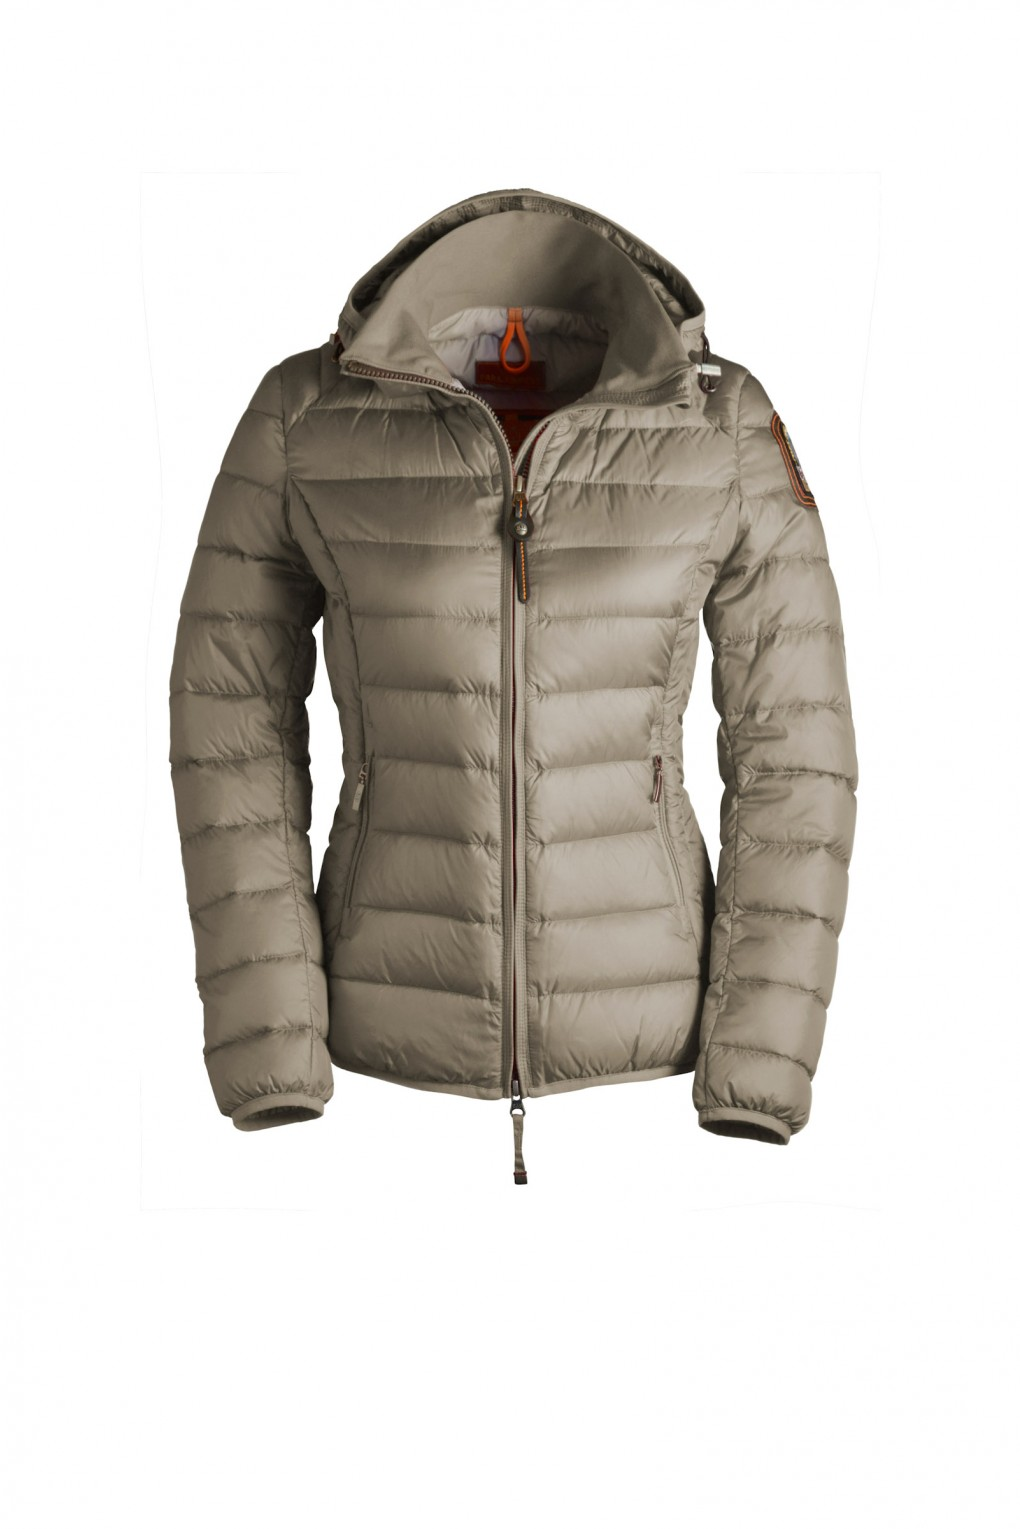 parajumpers JULIET6 woman outerwear Cappuccino